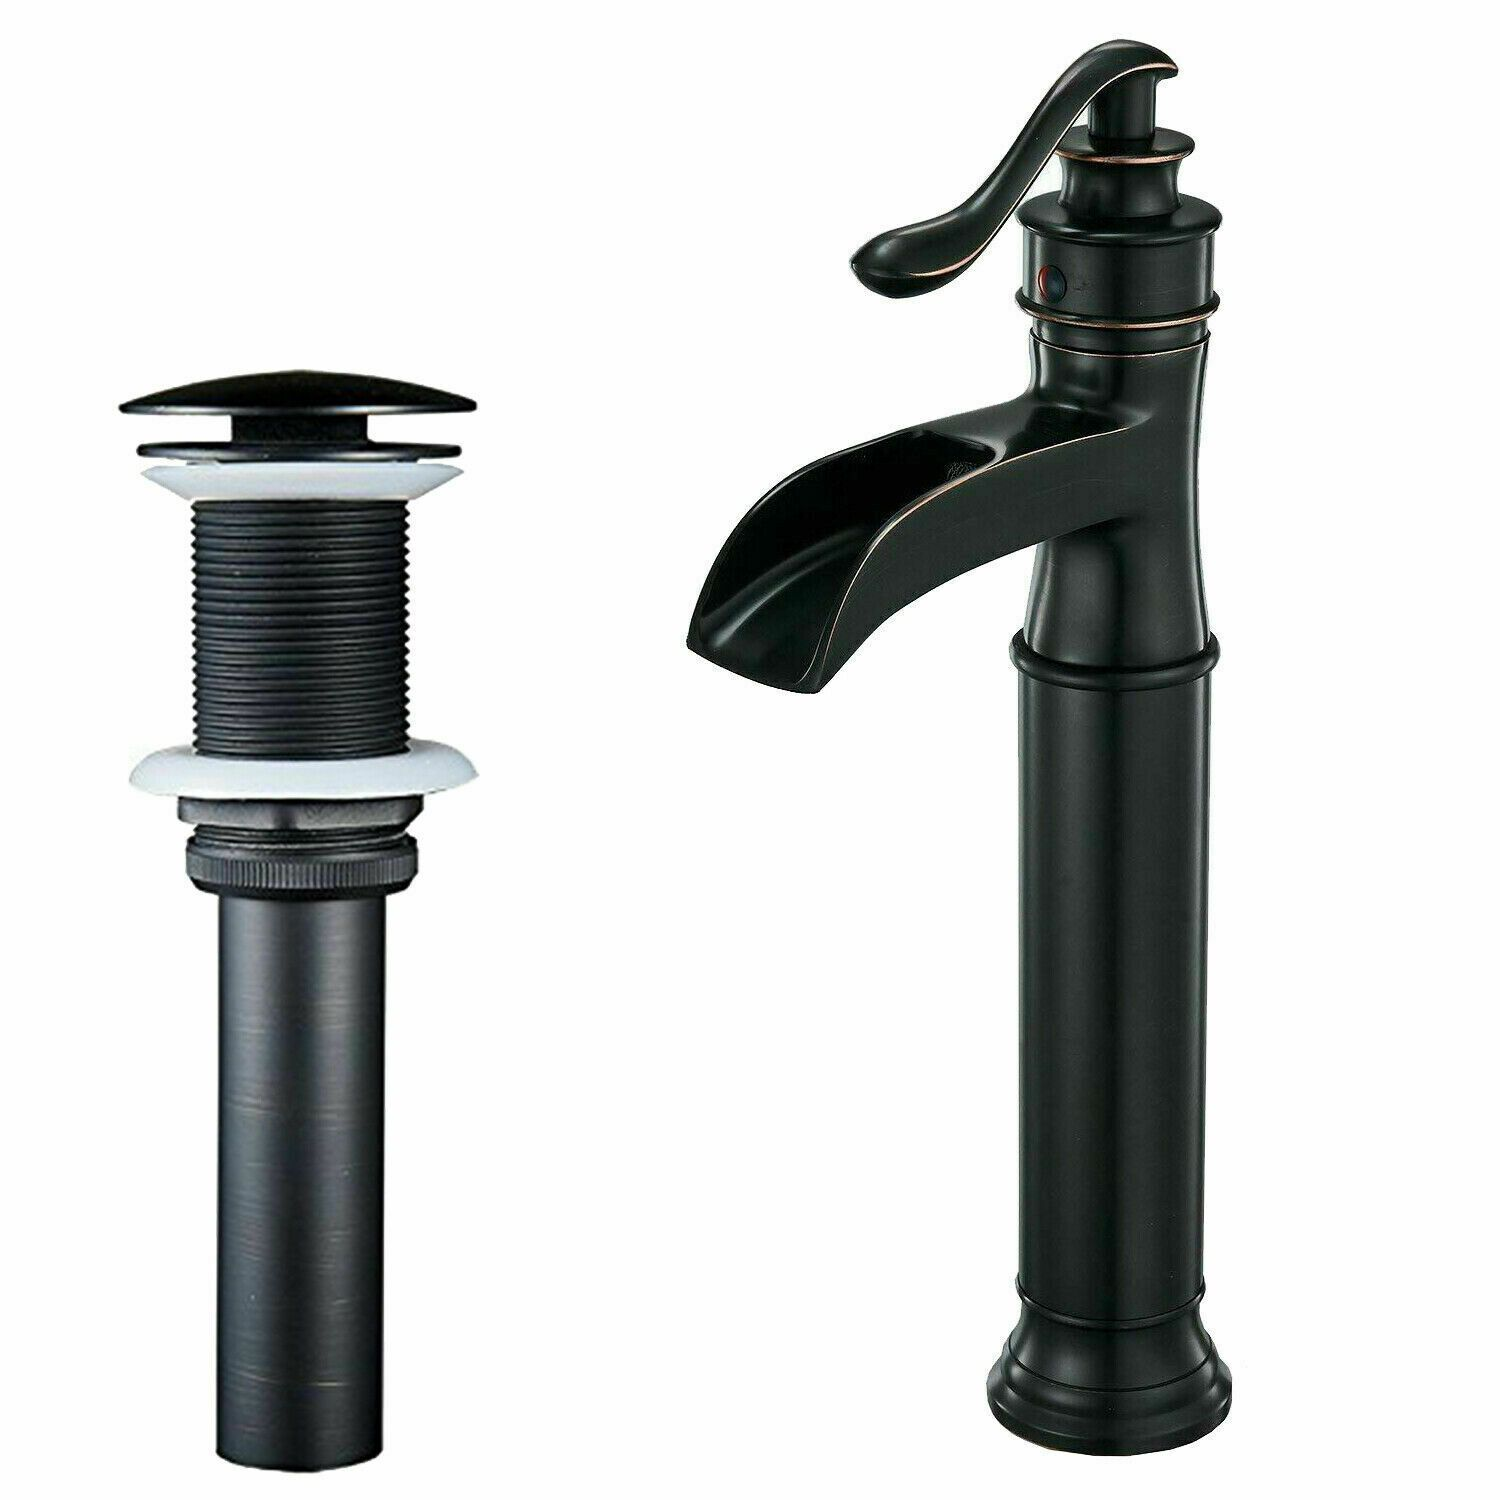 US Waterfall Deck Mount Black Oil Bathroom Basin Sink Mixer Vanity Faucet Taps